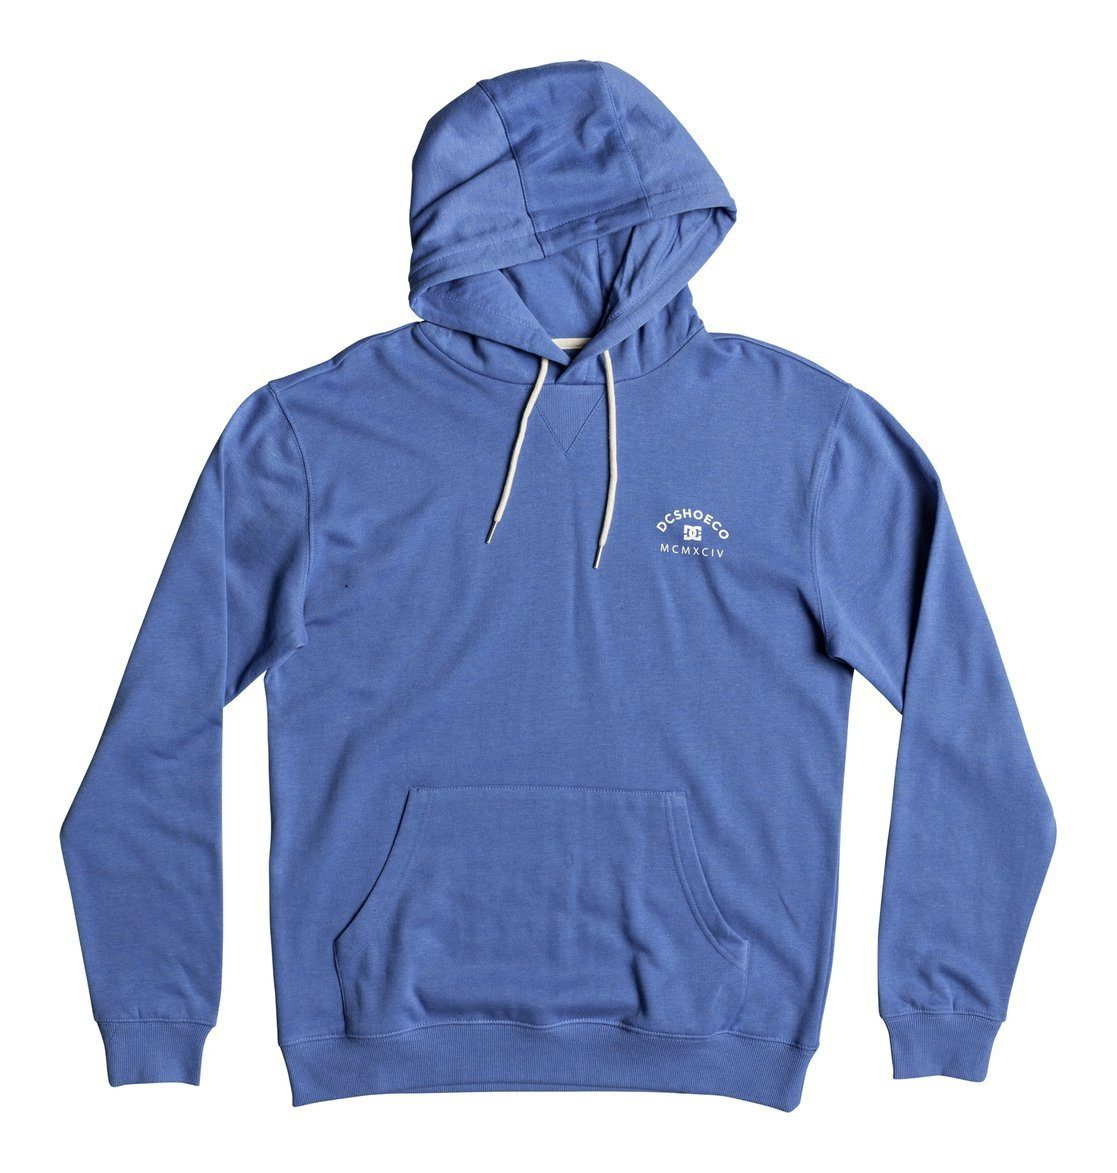 DC Shoes Hoodie »Rebel 3« | Bekleidung > Pullover > Sonstige Pullover | Blau | Polyester | DC SHOES